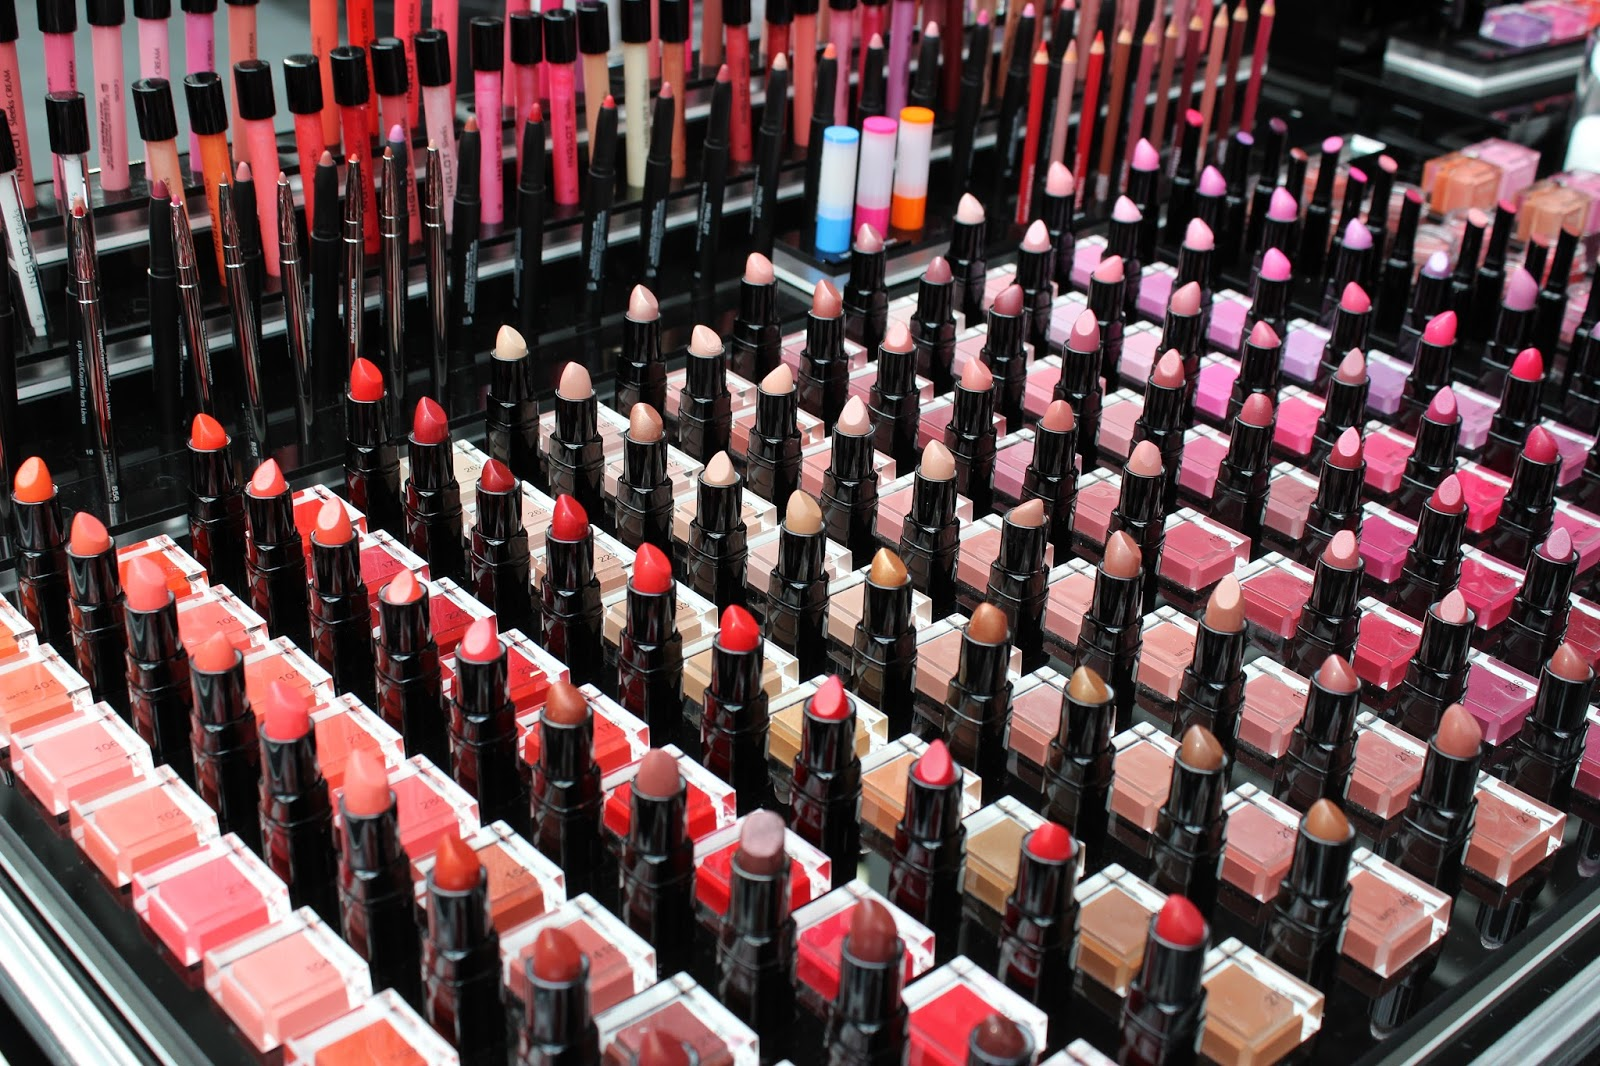 IMATS london 2014 inglot lipsticks